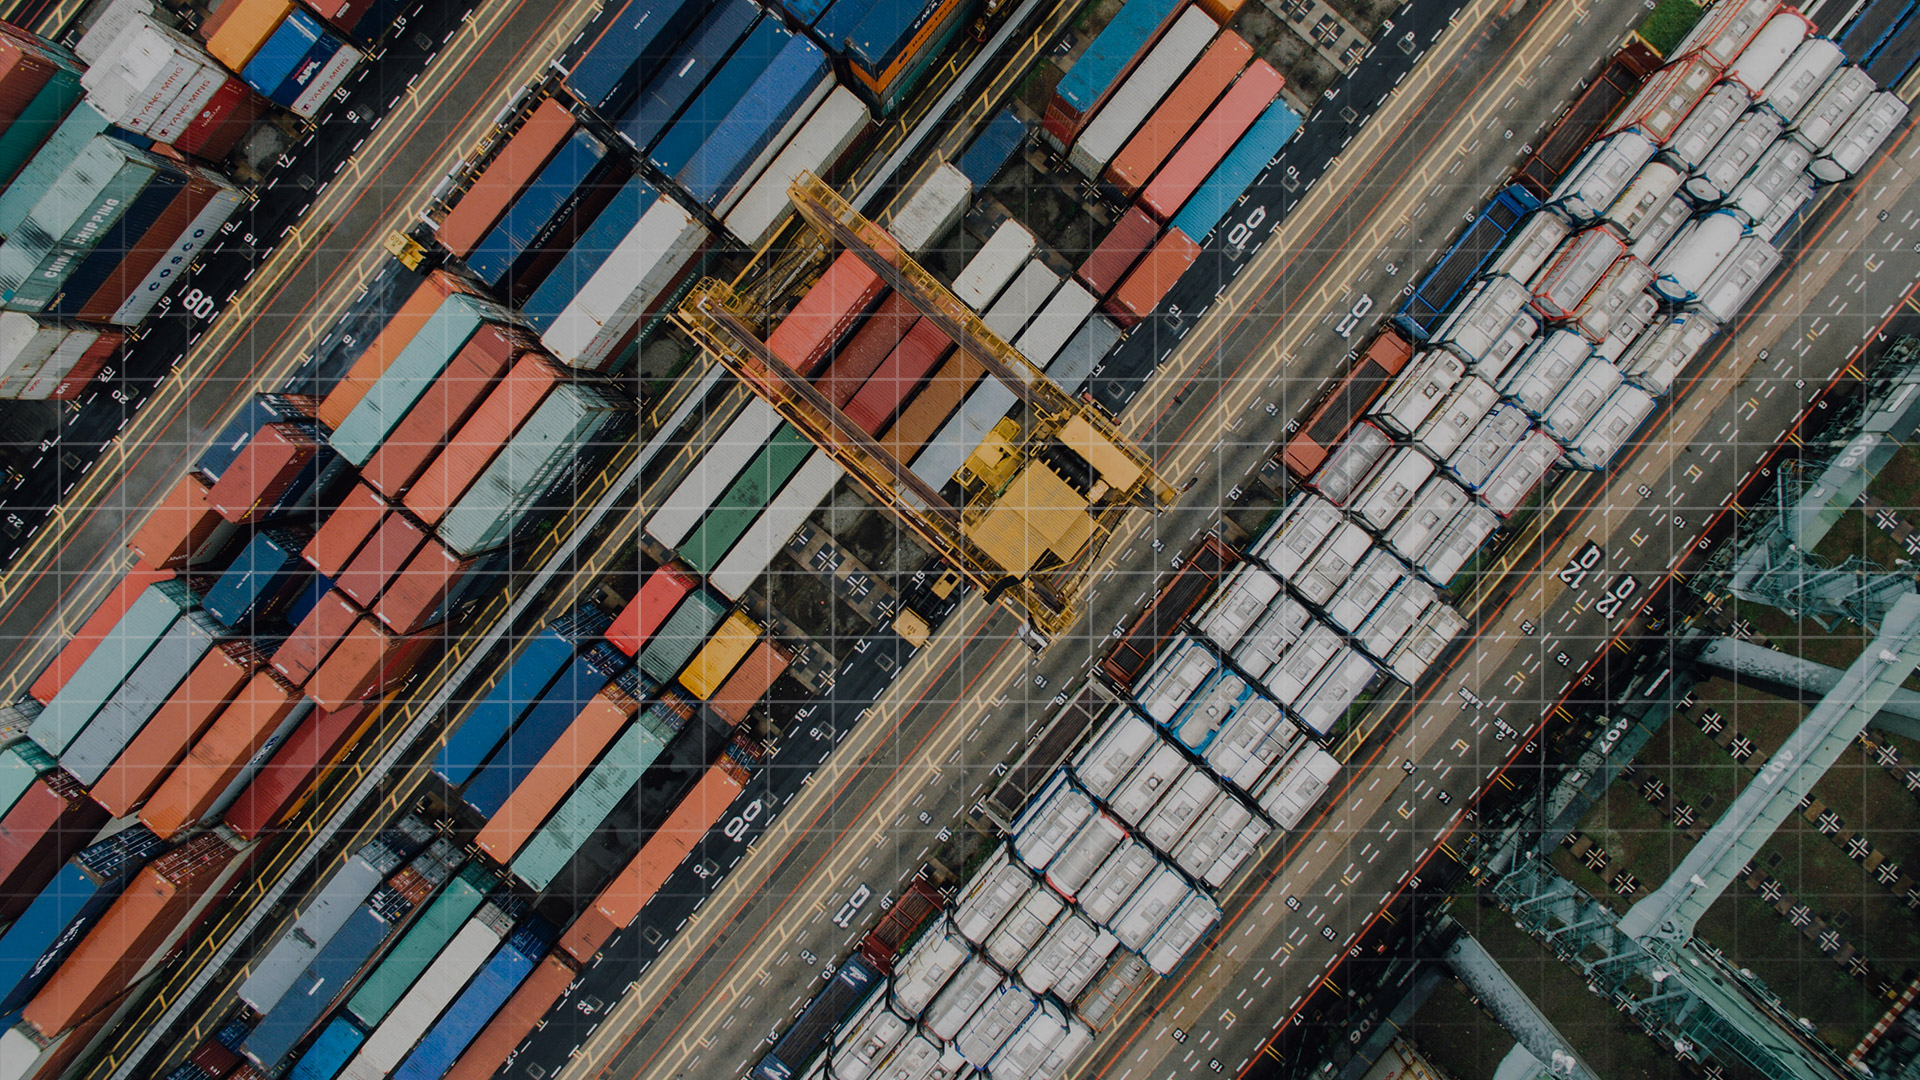 birds eye view of containers